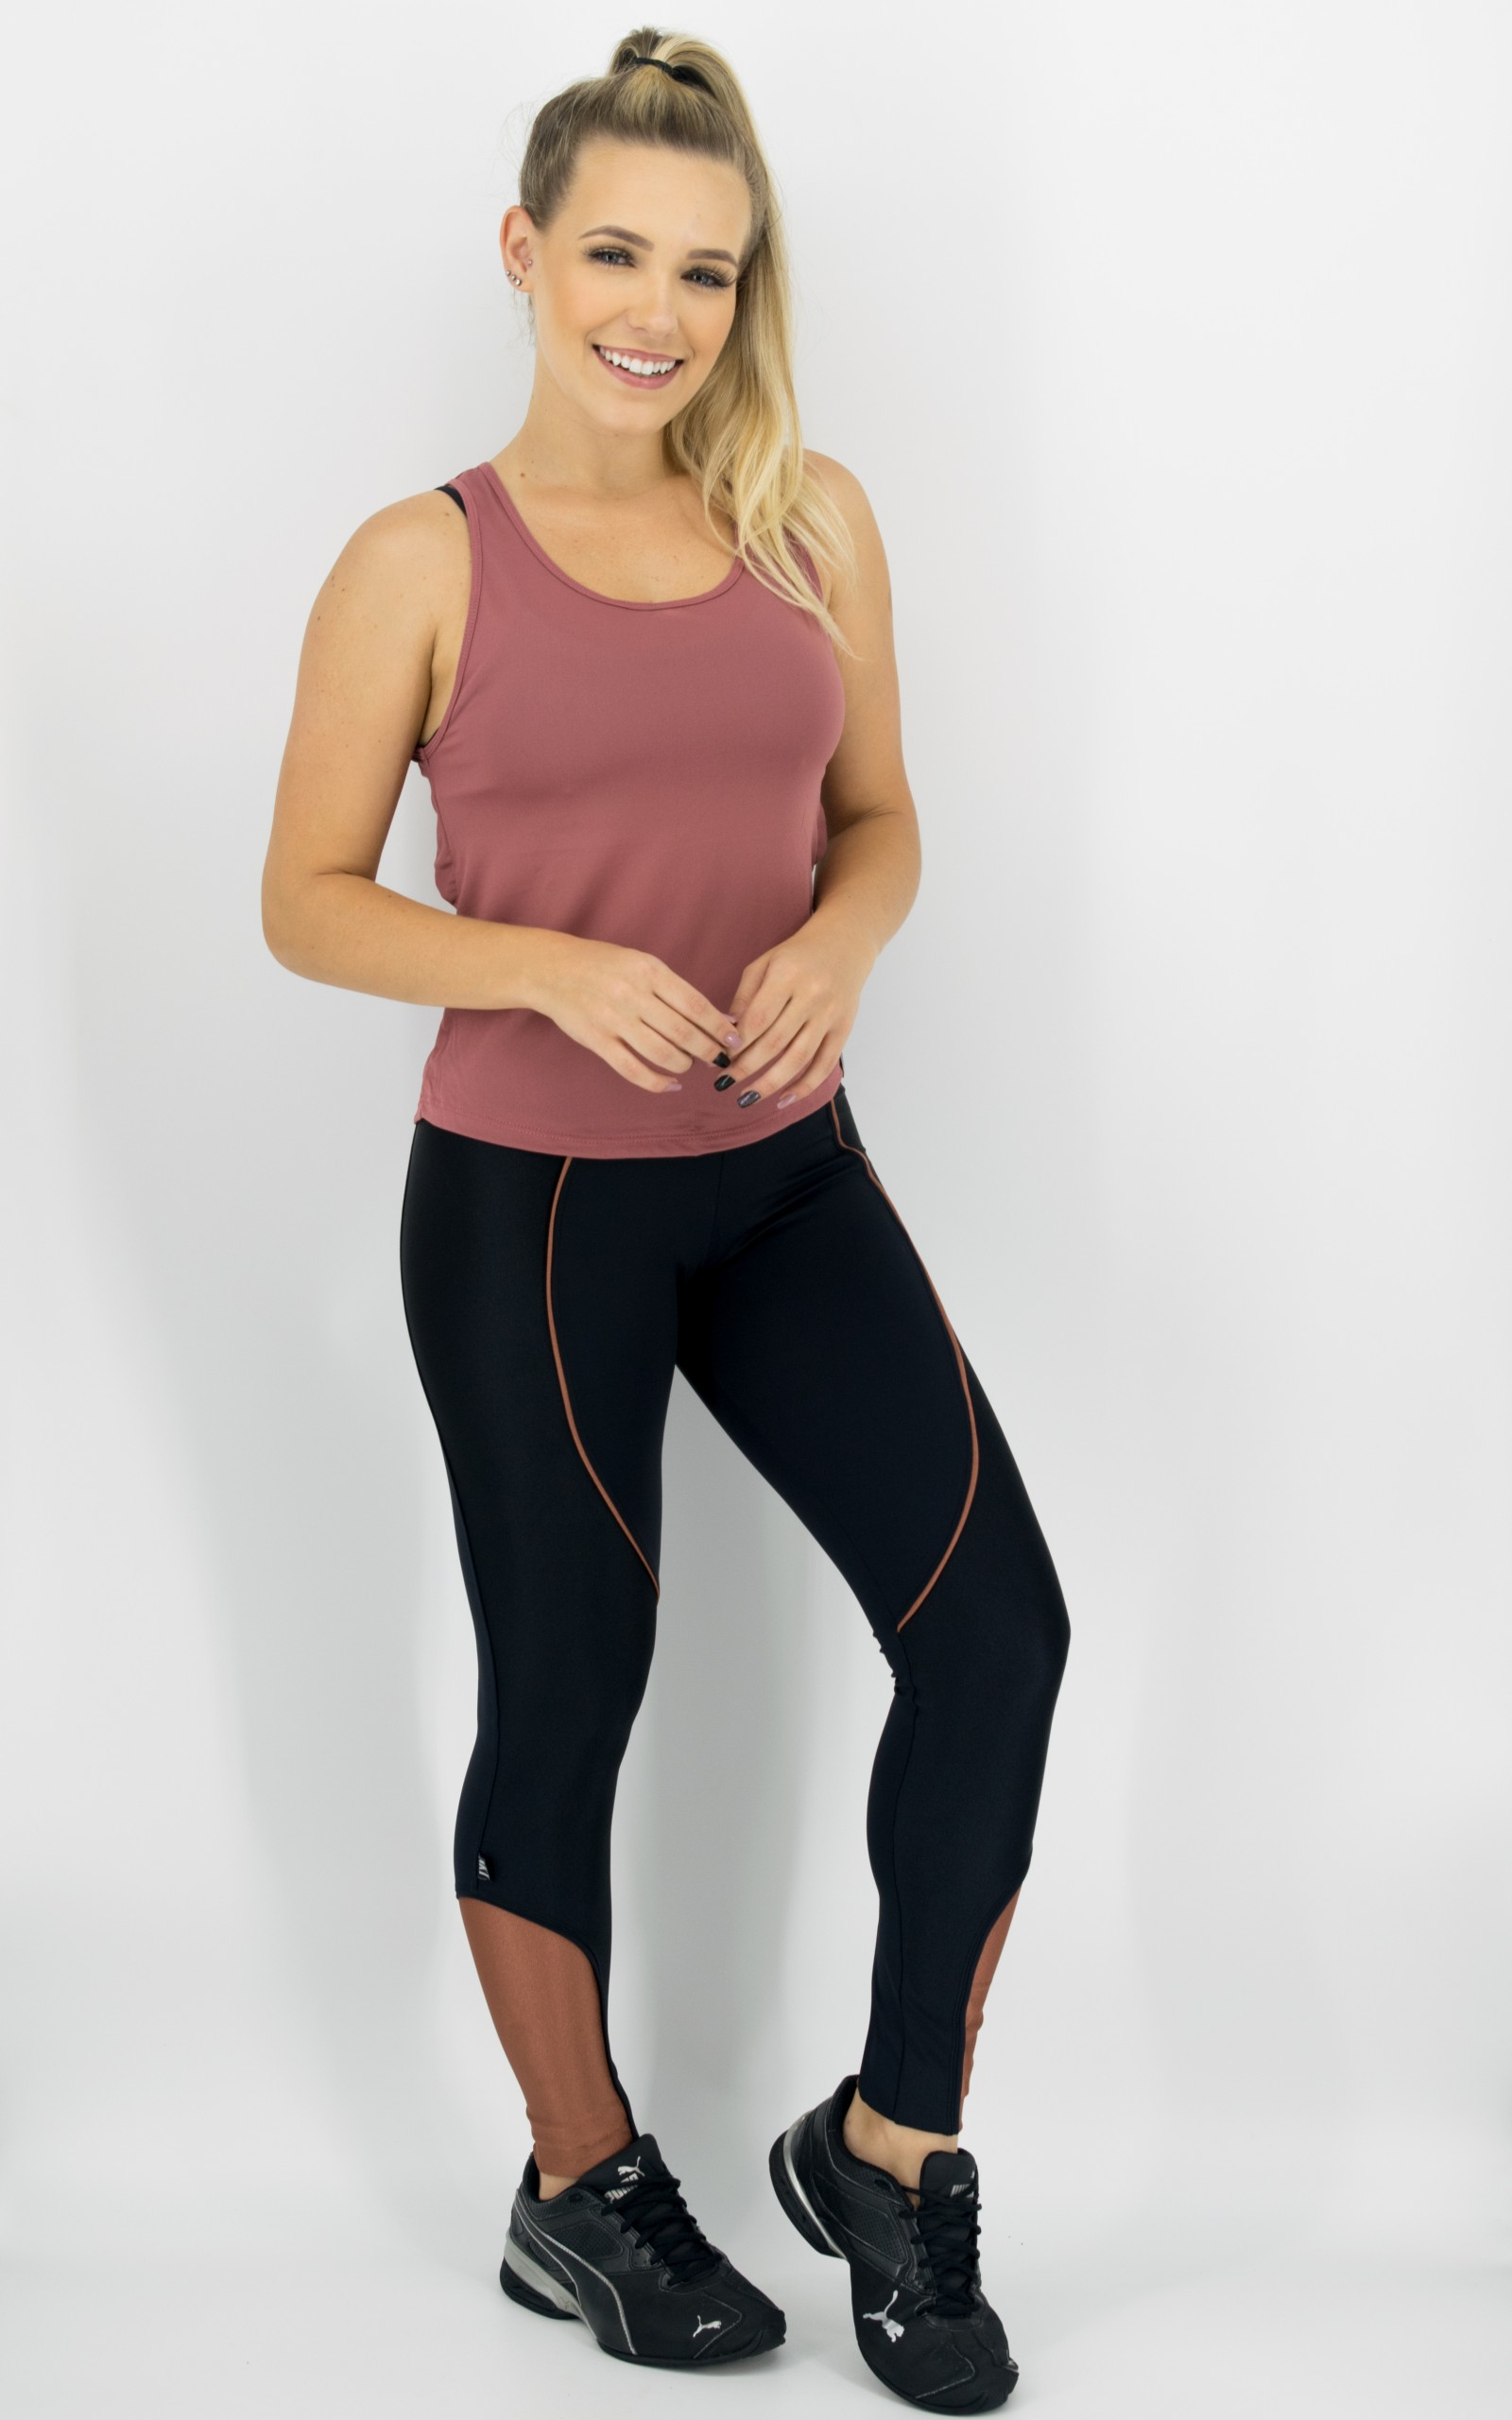 Legging Circle Cobre , Coleção Move Your Body - NKT Fitwear Moda Fitness